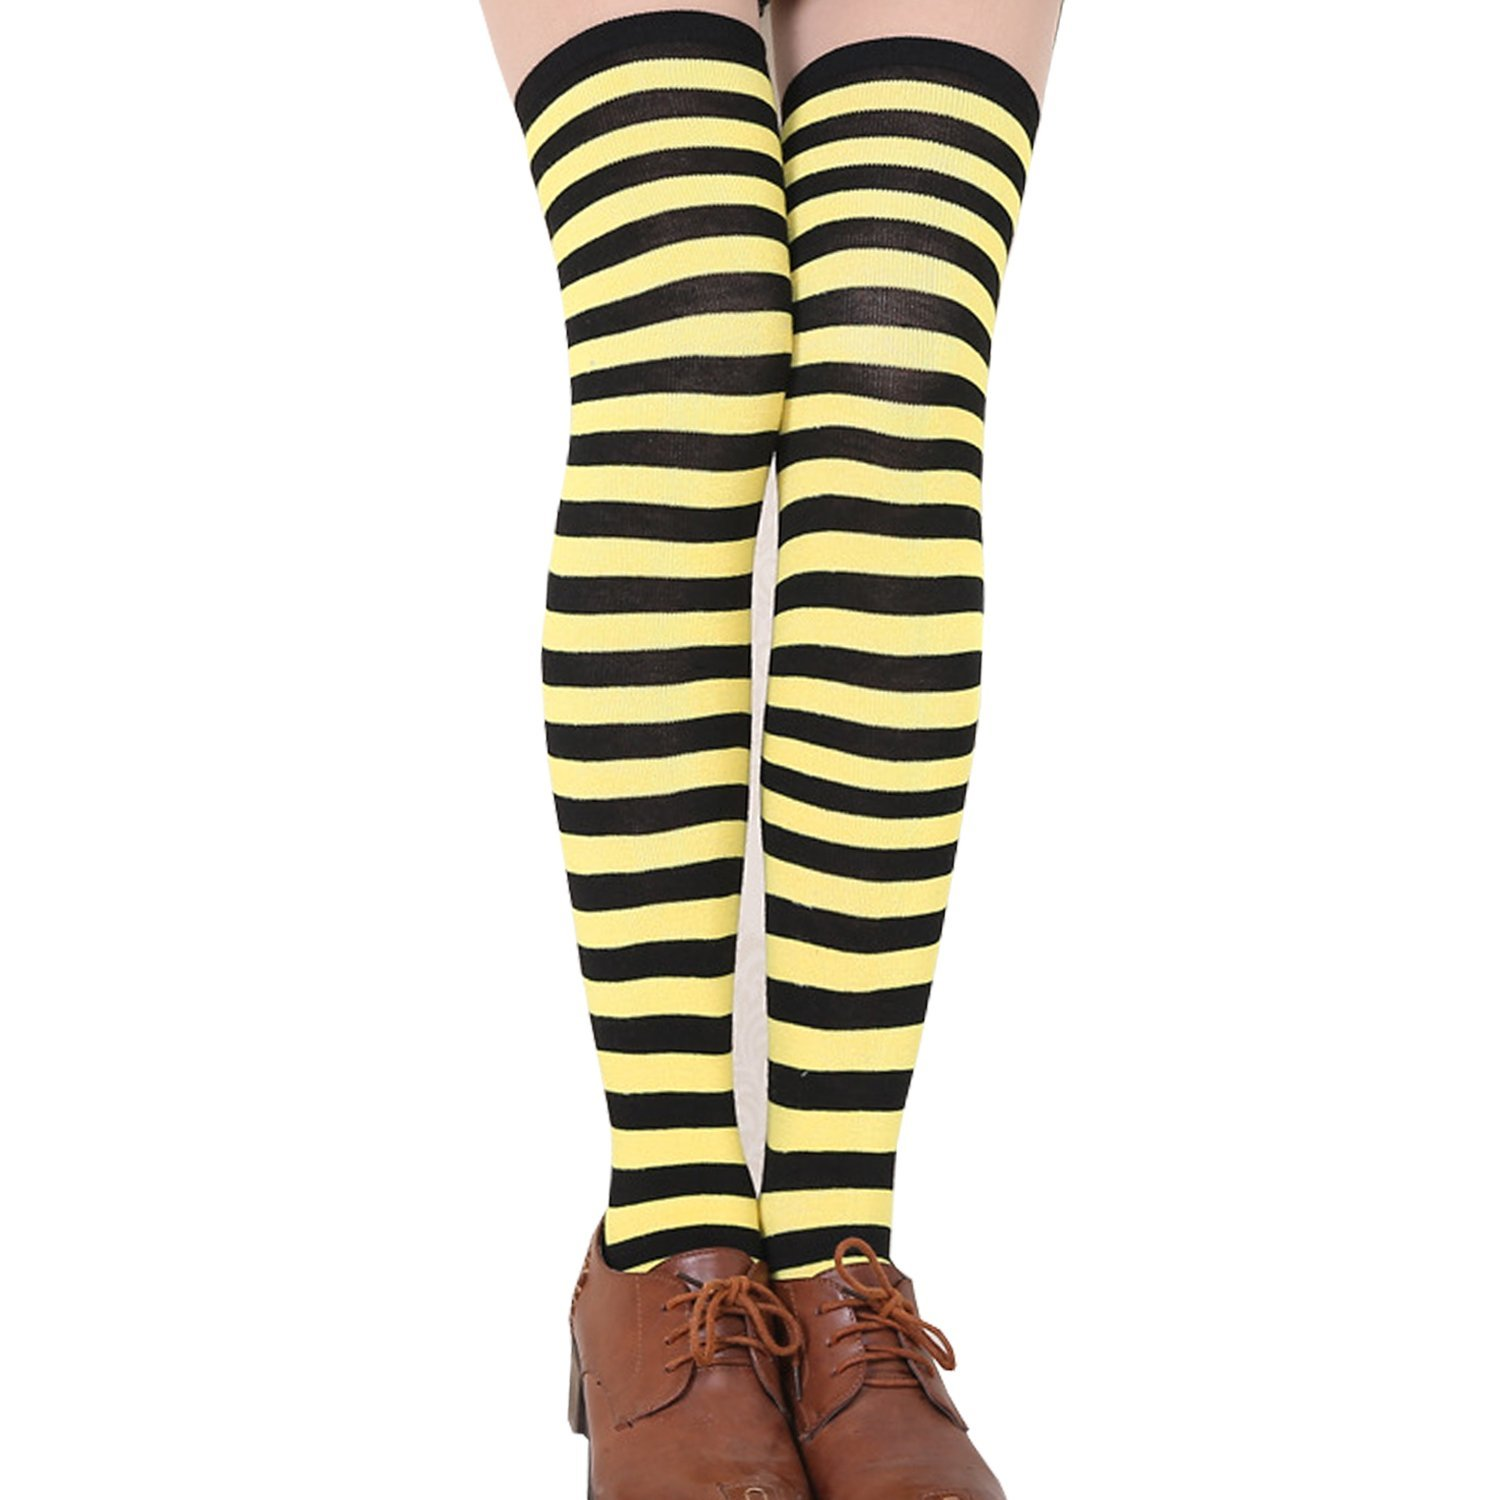 9d153a15839 Amazon.com  ONEFIT Striped Thigh High Socks Over Knee Girls Halloween  Cosplay (Black white)  Clothing